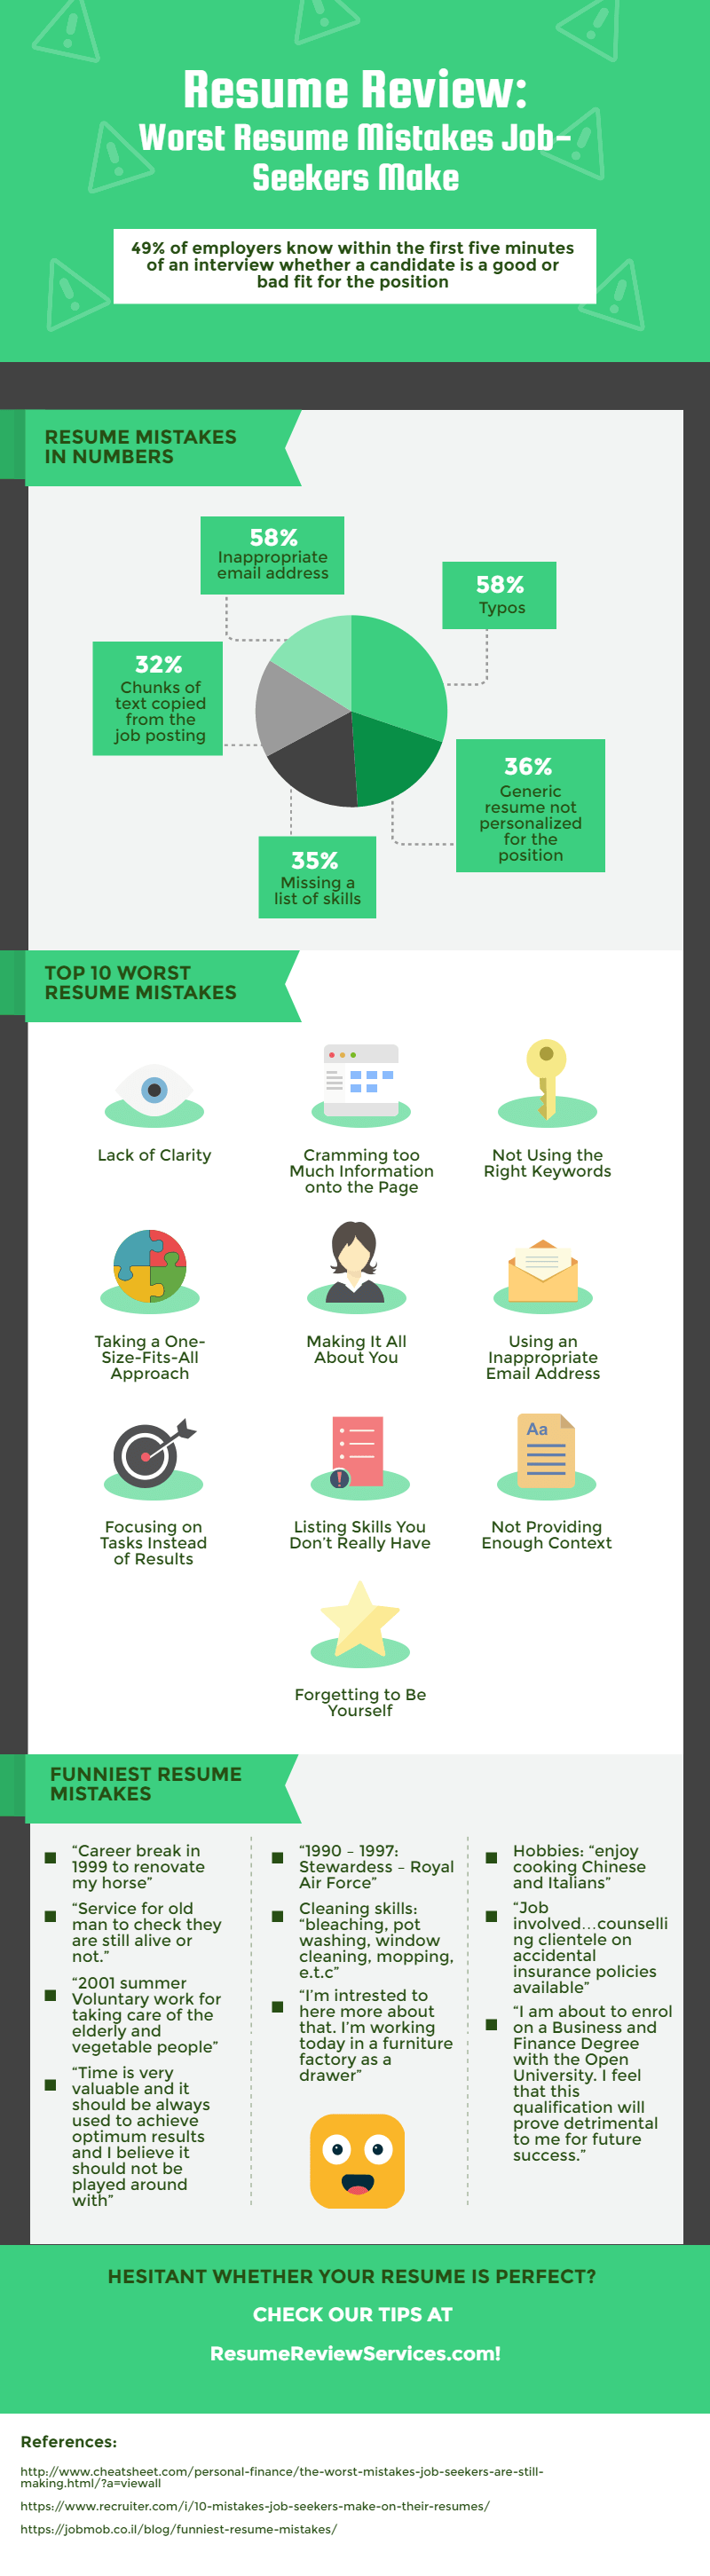 Resume Mistakes Worst Resume Mistakes Job Seekers Make Infographic Portal